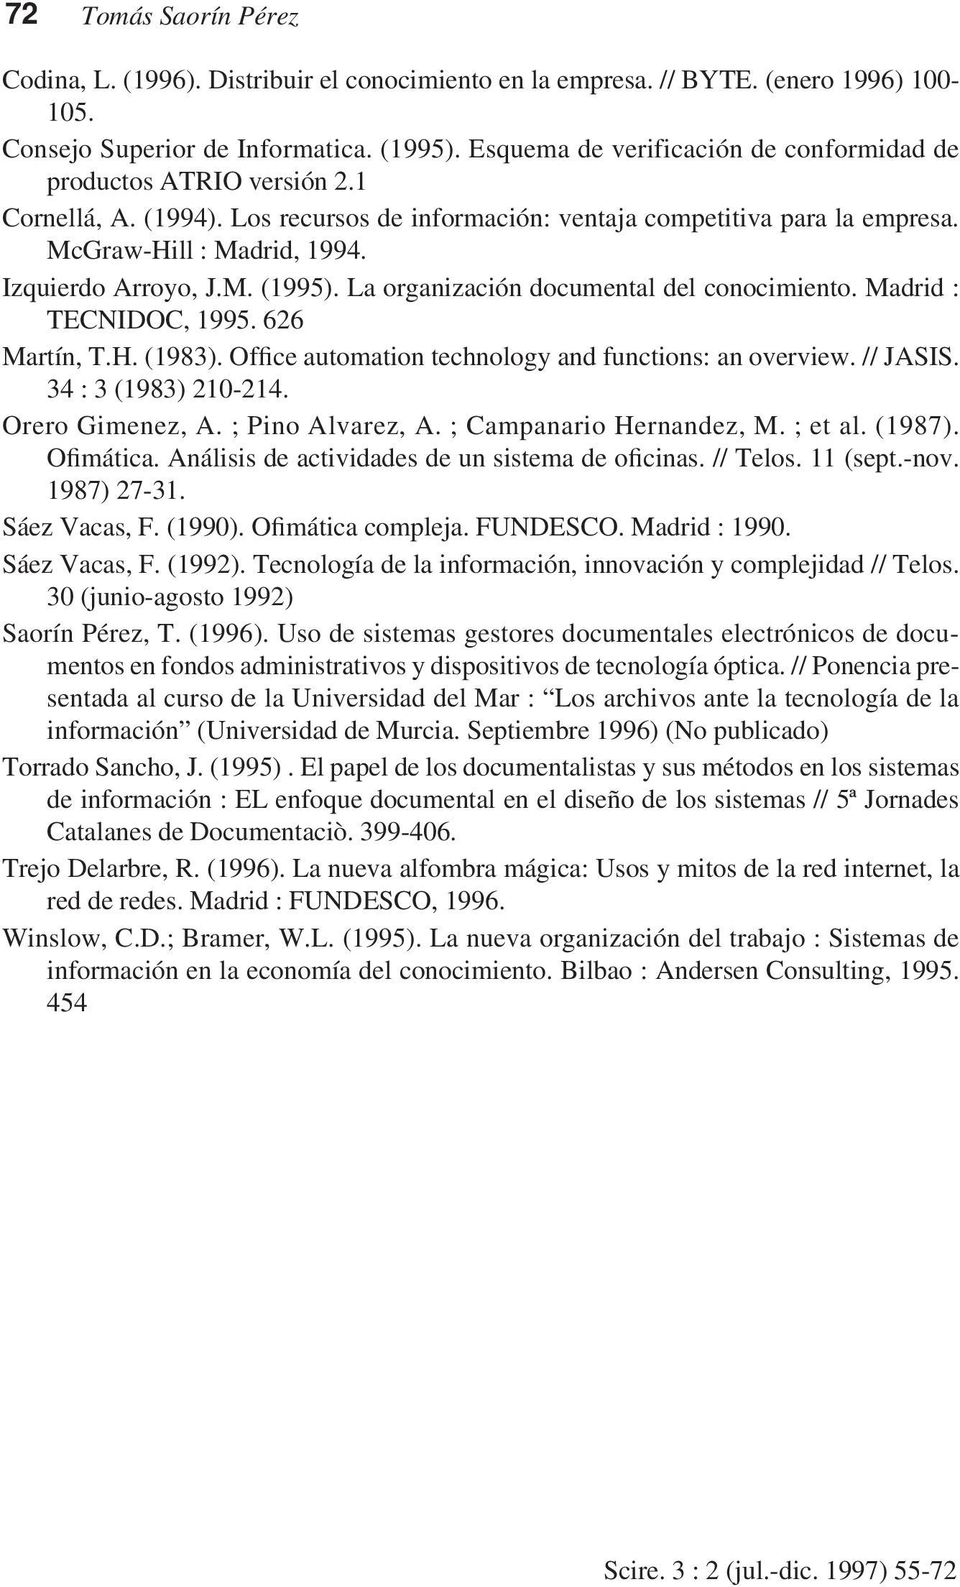 Izquierdo Arroyo, J.M. (1995). La organización documental del conocimiento. Madrid : TECNIDOC, 1995. 626 Martín, T.H. (1983). Office automation technology and functions: an overview. // JASIS.